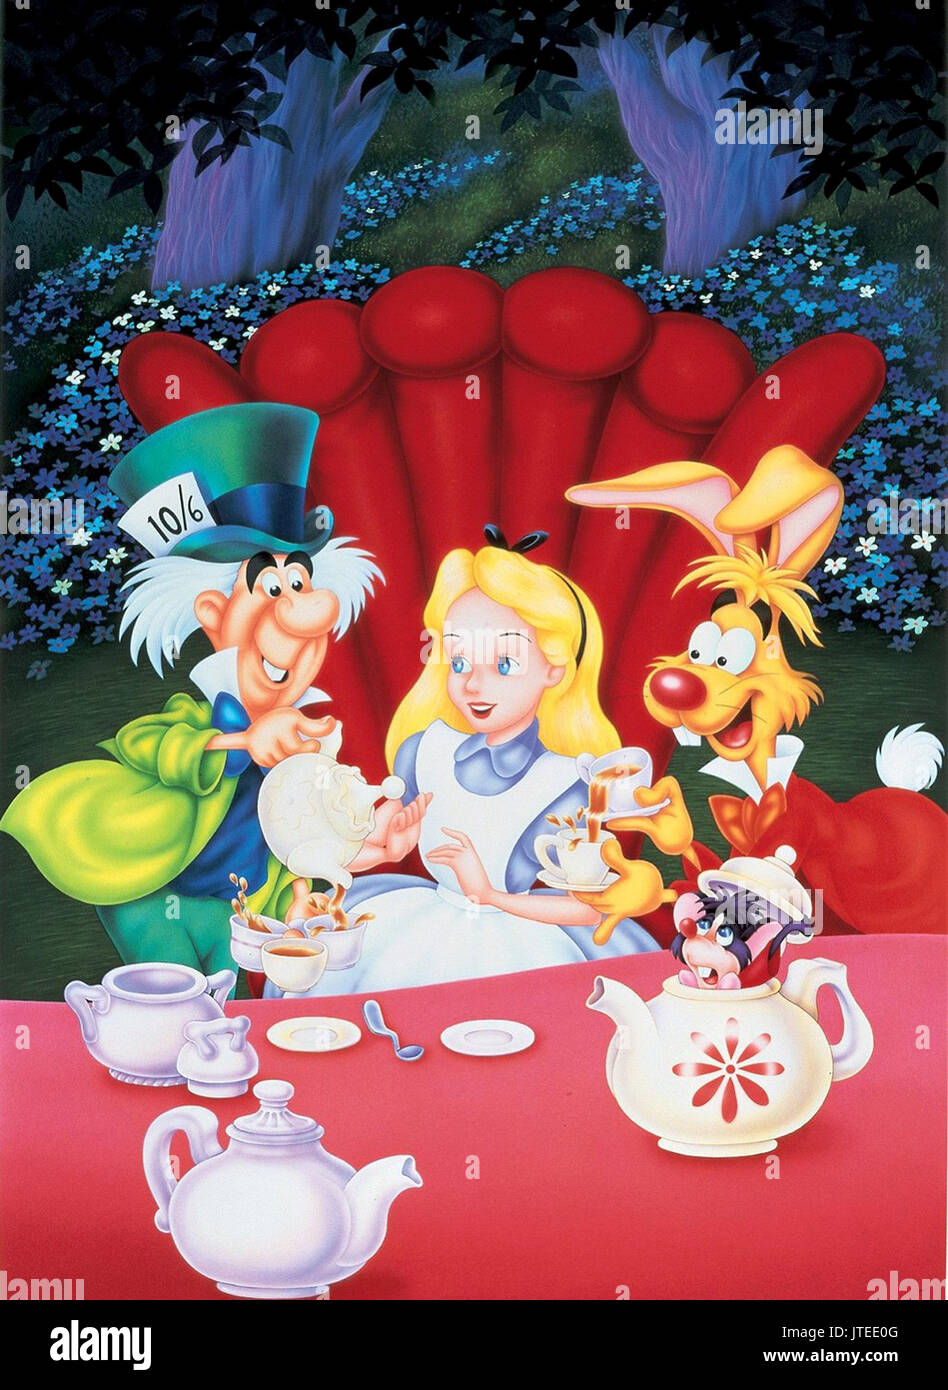 mad hatter alice amp march hare alice in wonderland 1951